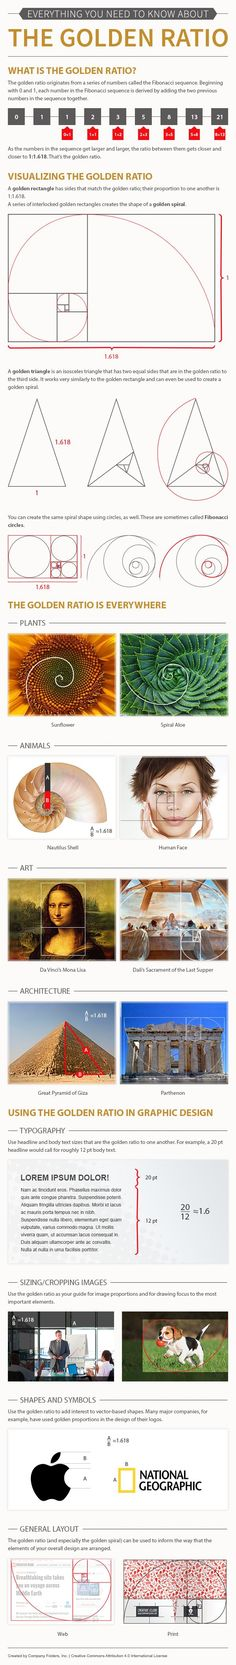 How to Use the Golden Ratio to Create Gorgeous Graphic Designs [by Company Folders -- via #tipsographic]. More at tipsographic.com